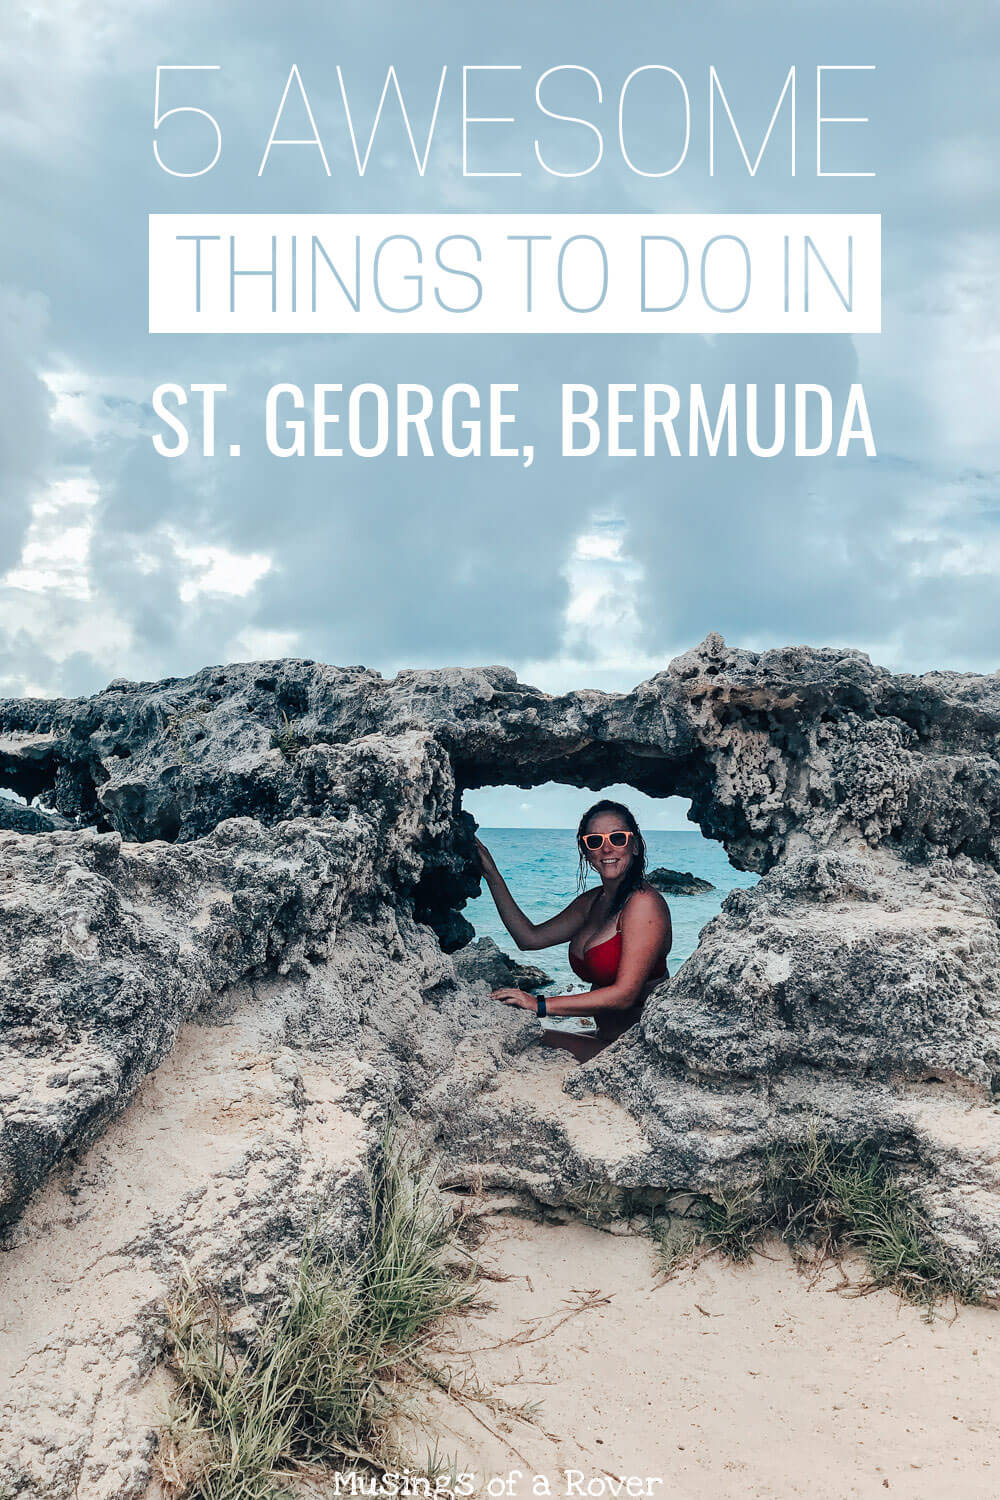 Are you headed to St George Bermuda? This little historical town has over 400 years of history and lots of things to do including Tobacco Bay, Fort St. Catherine, St. Catherine Beach, St. Peter's Church, historical reenactments, good seafood, and more. Don't miss it on your trip!